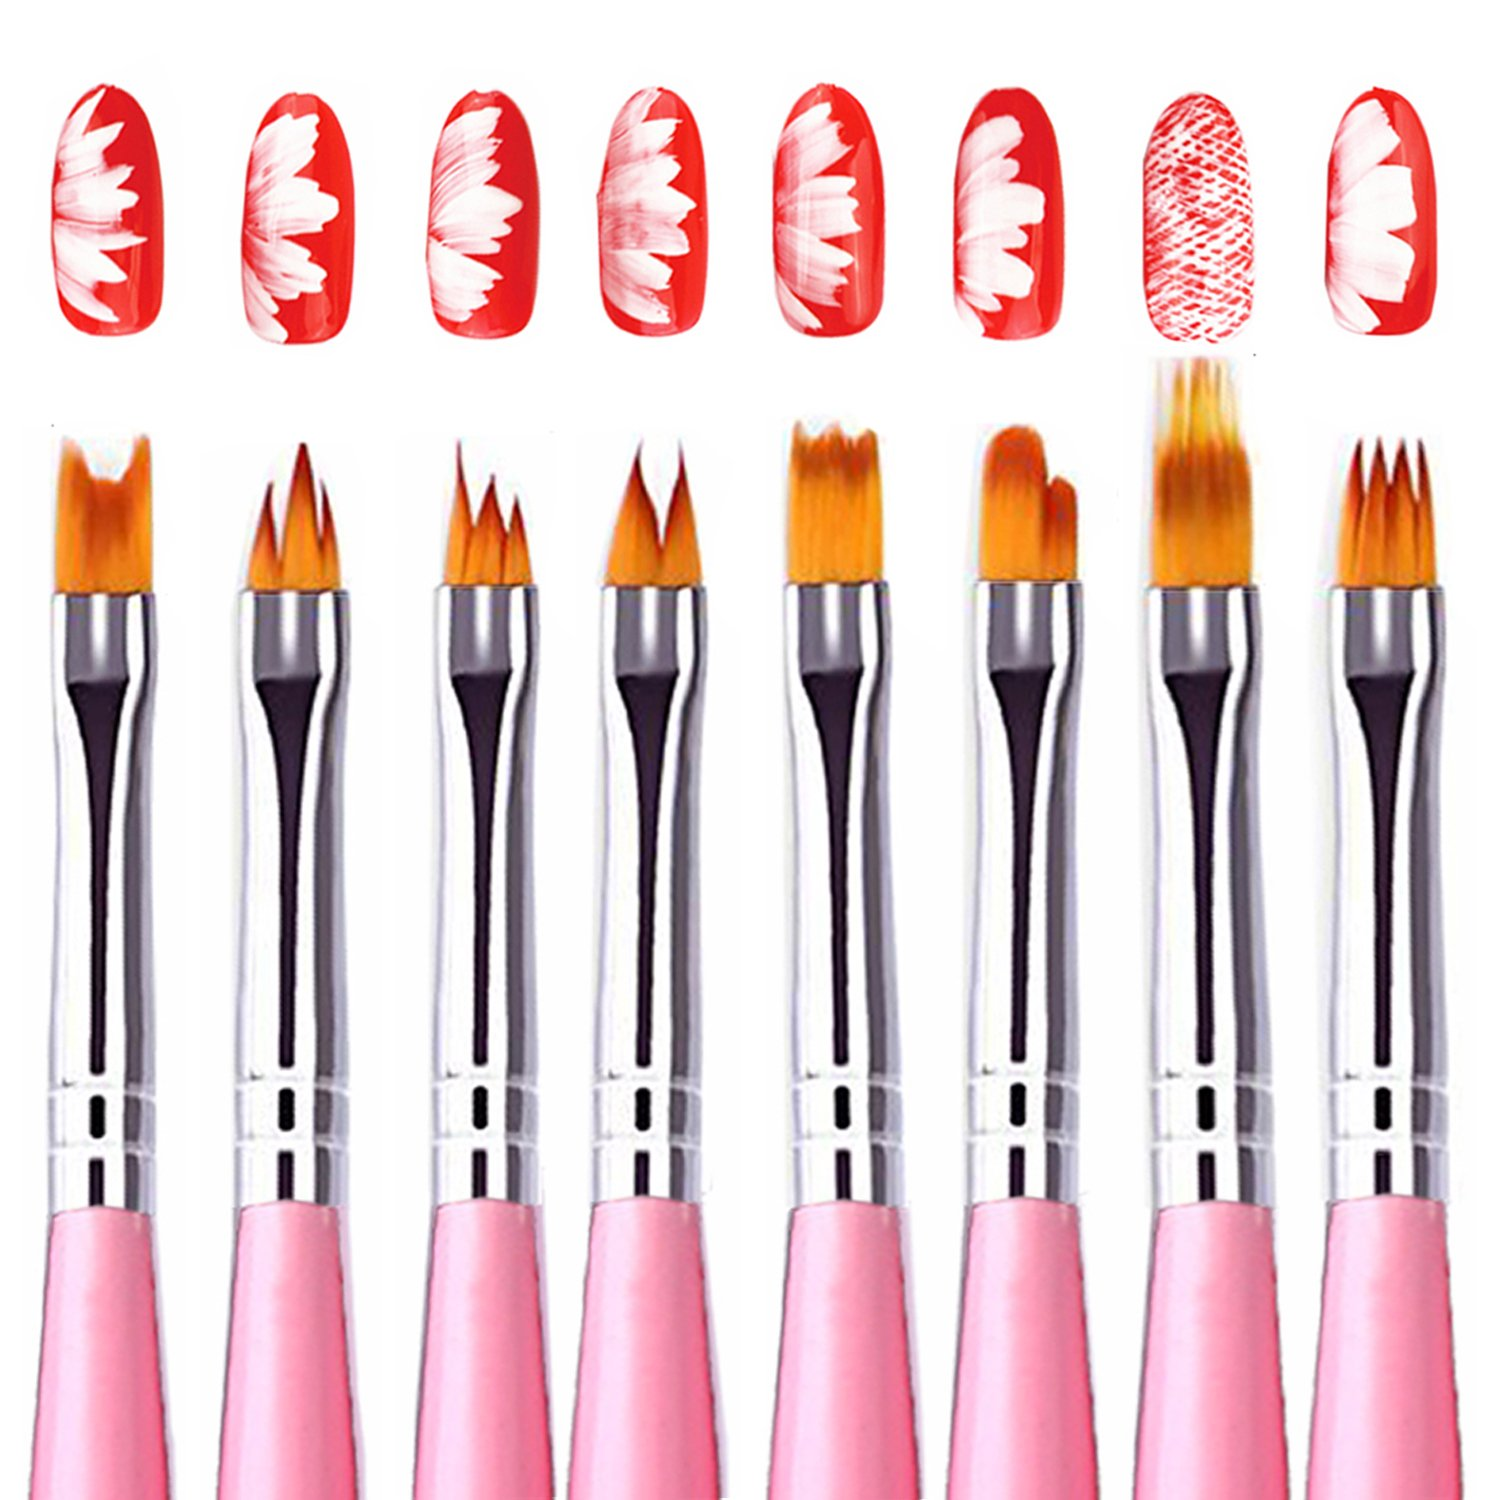 Amazon.com : Kingtree 8 PCS Nail Art Brush Set, Gradient Acrylic ...